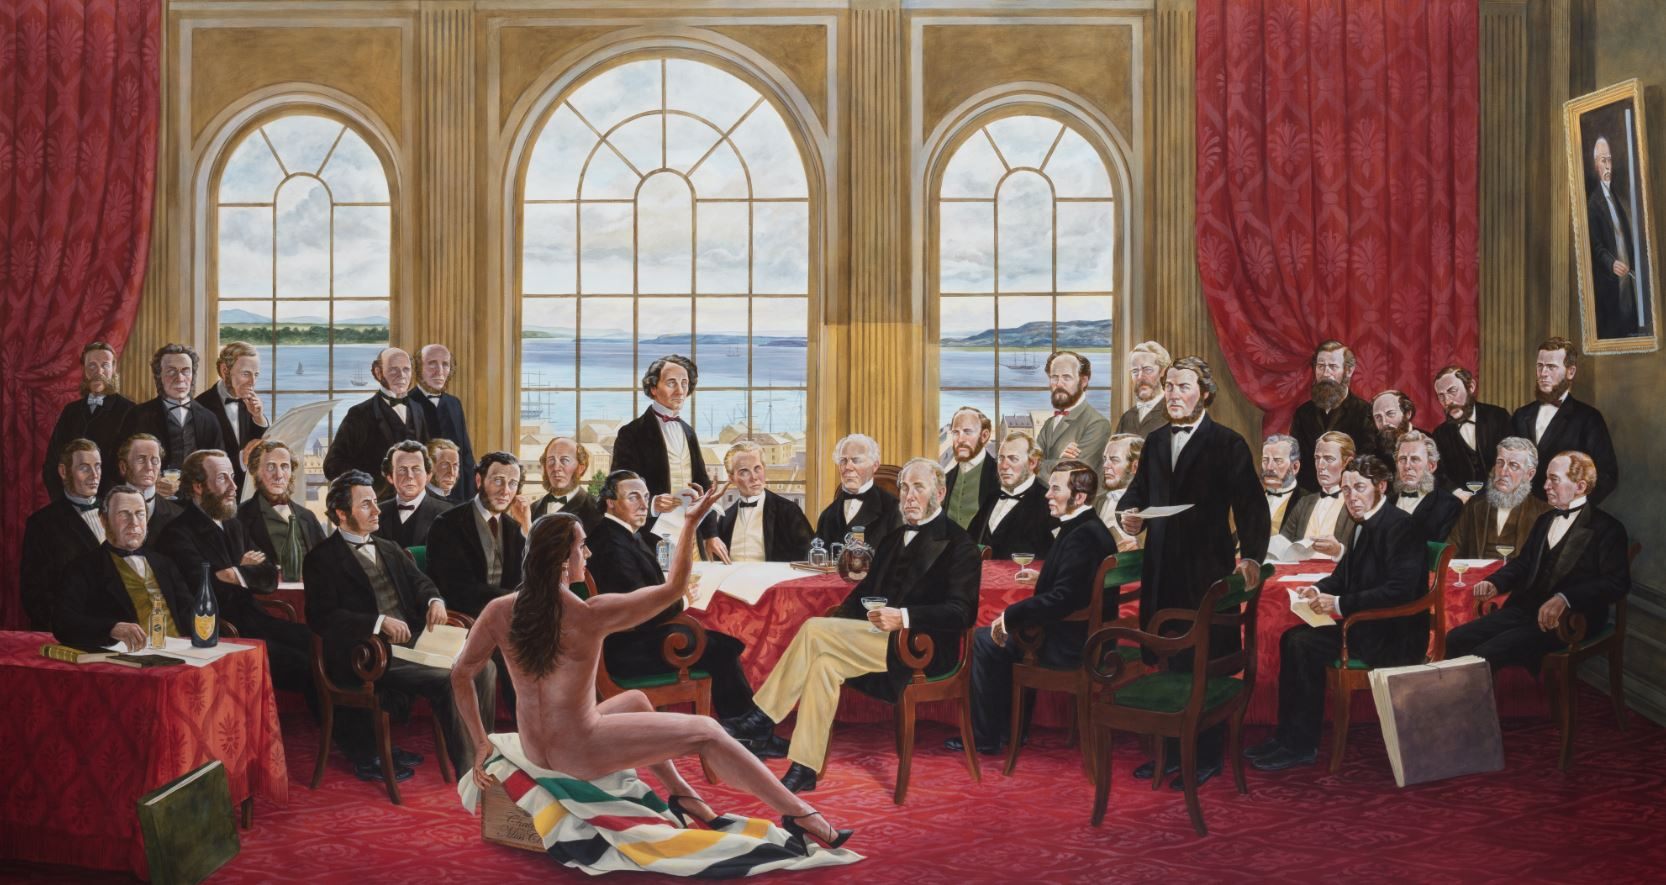 Kent Monkman painting depicting the fathers of confederation with an Indigenous person present